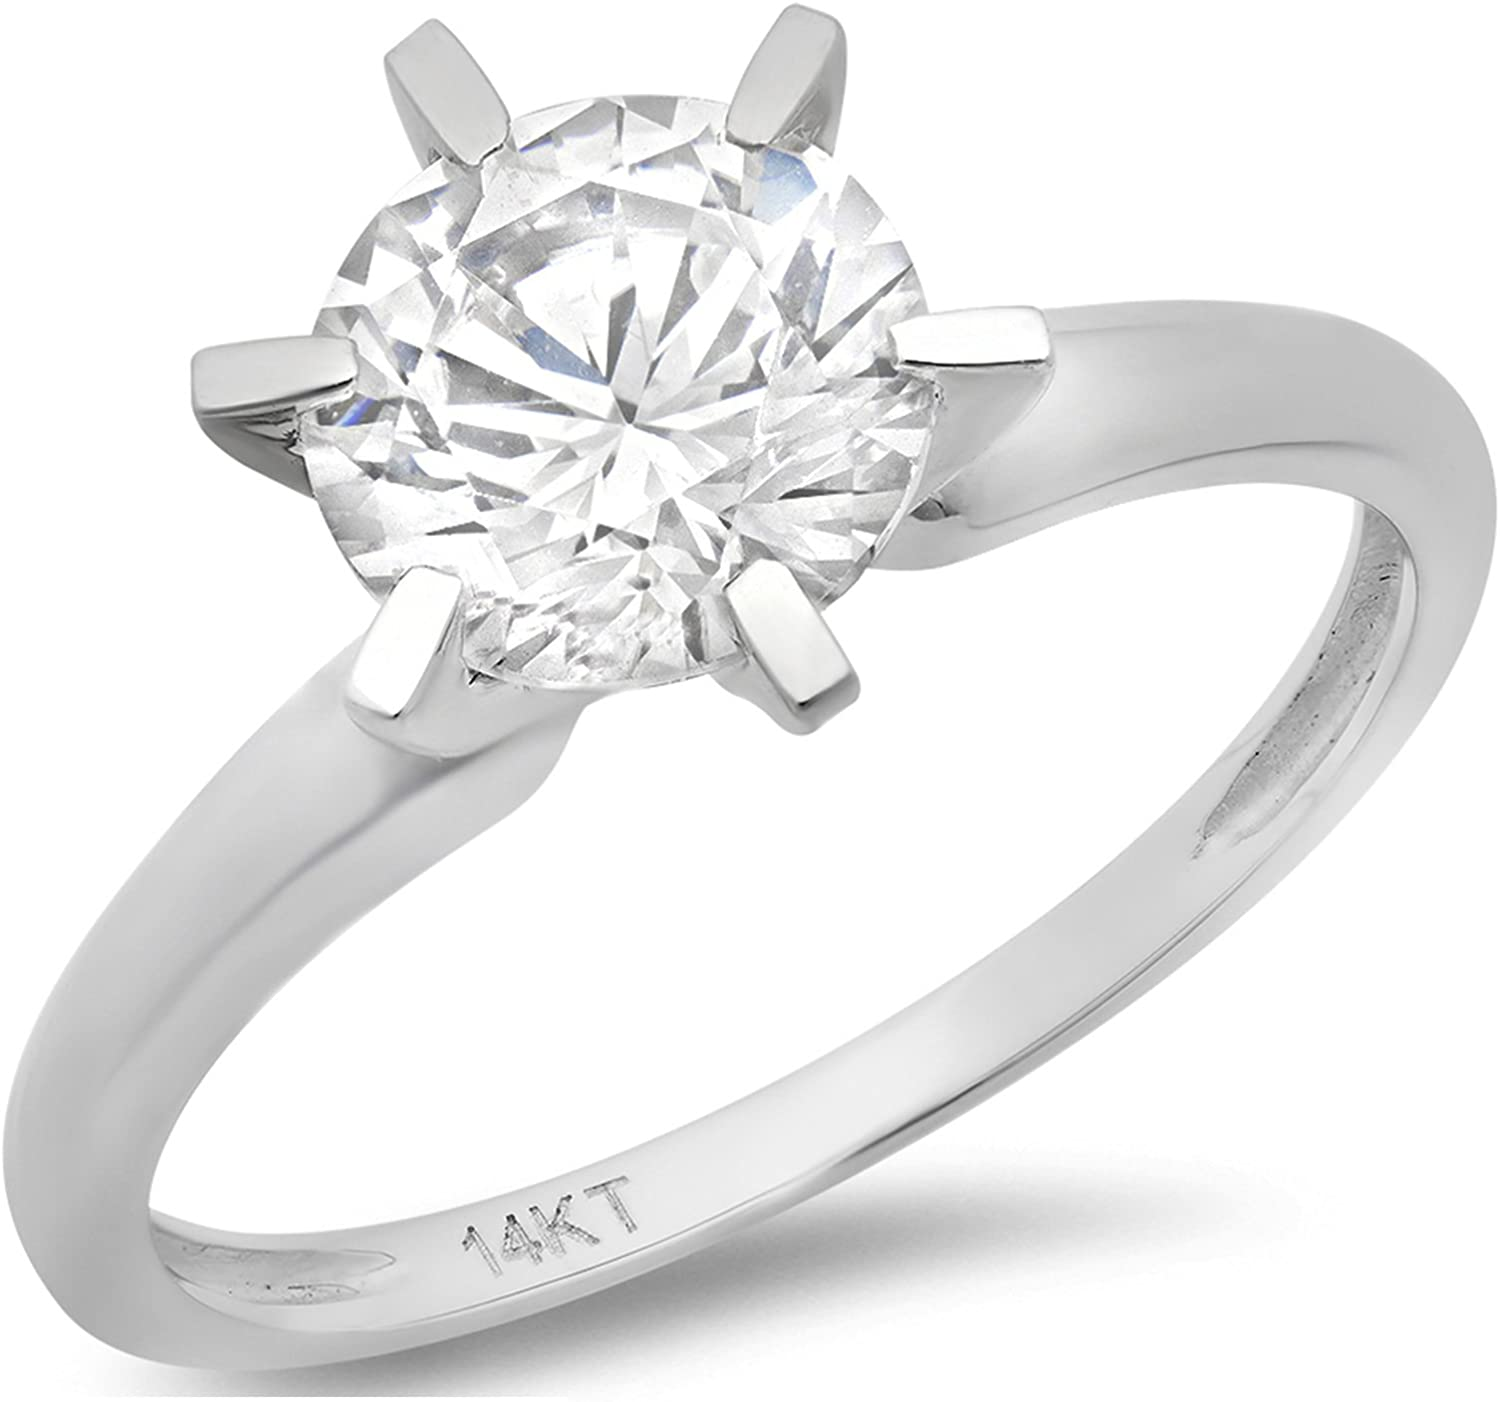 Clara Pucci 3.2 Ct Brilliant Round Cut Solitaire Engagement Promise Wedding Bridal Anniversary Ring Solid 14K White Gold